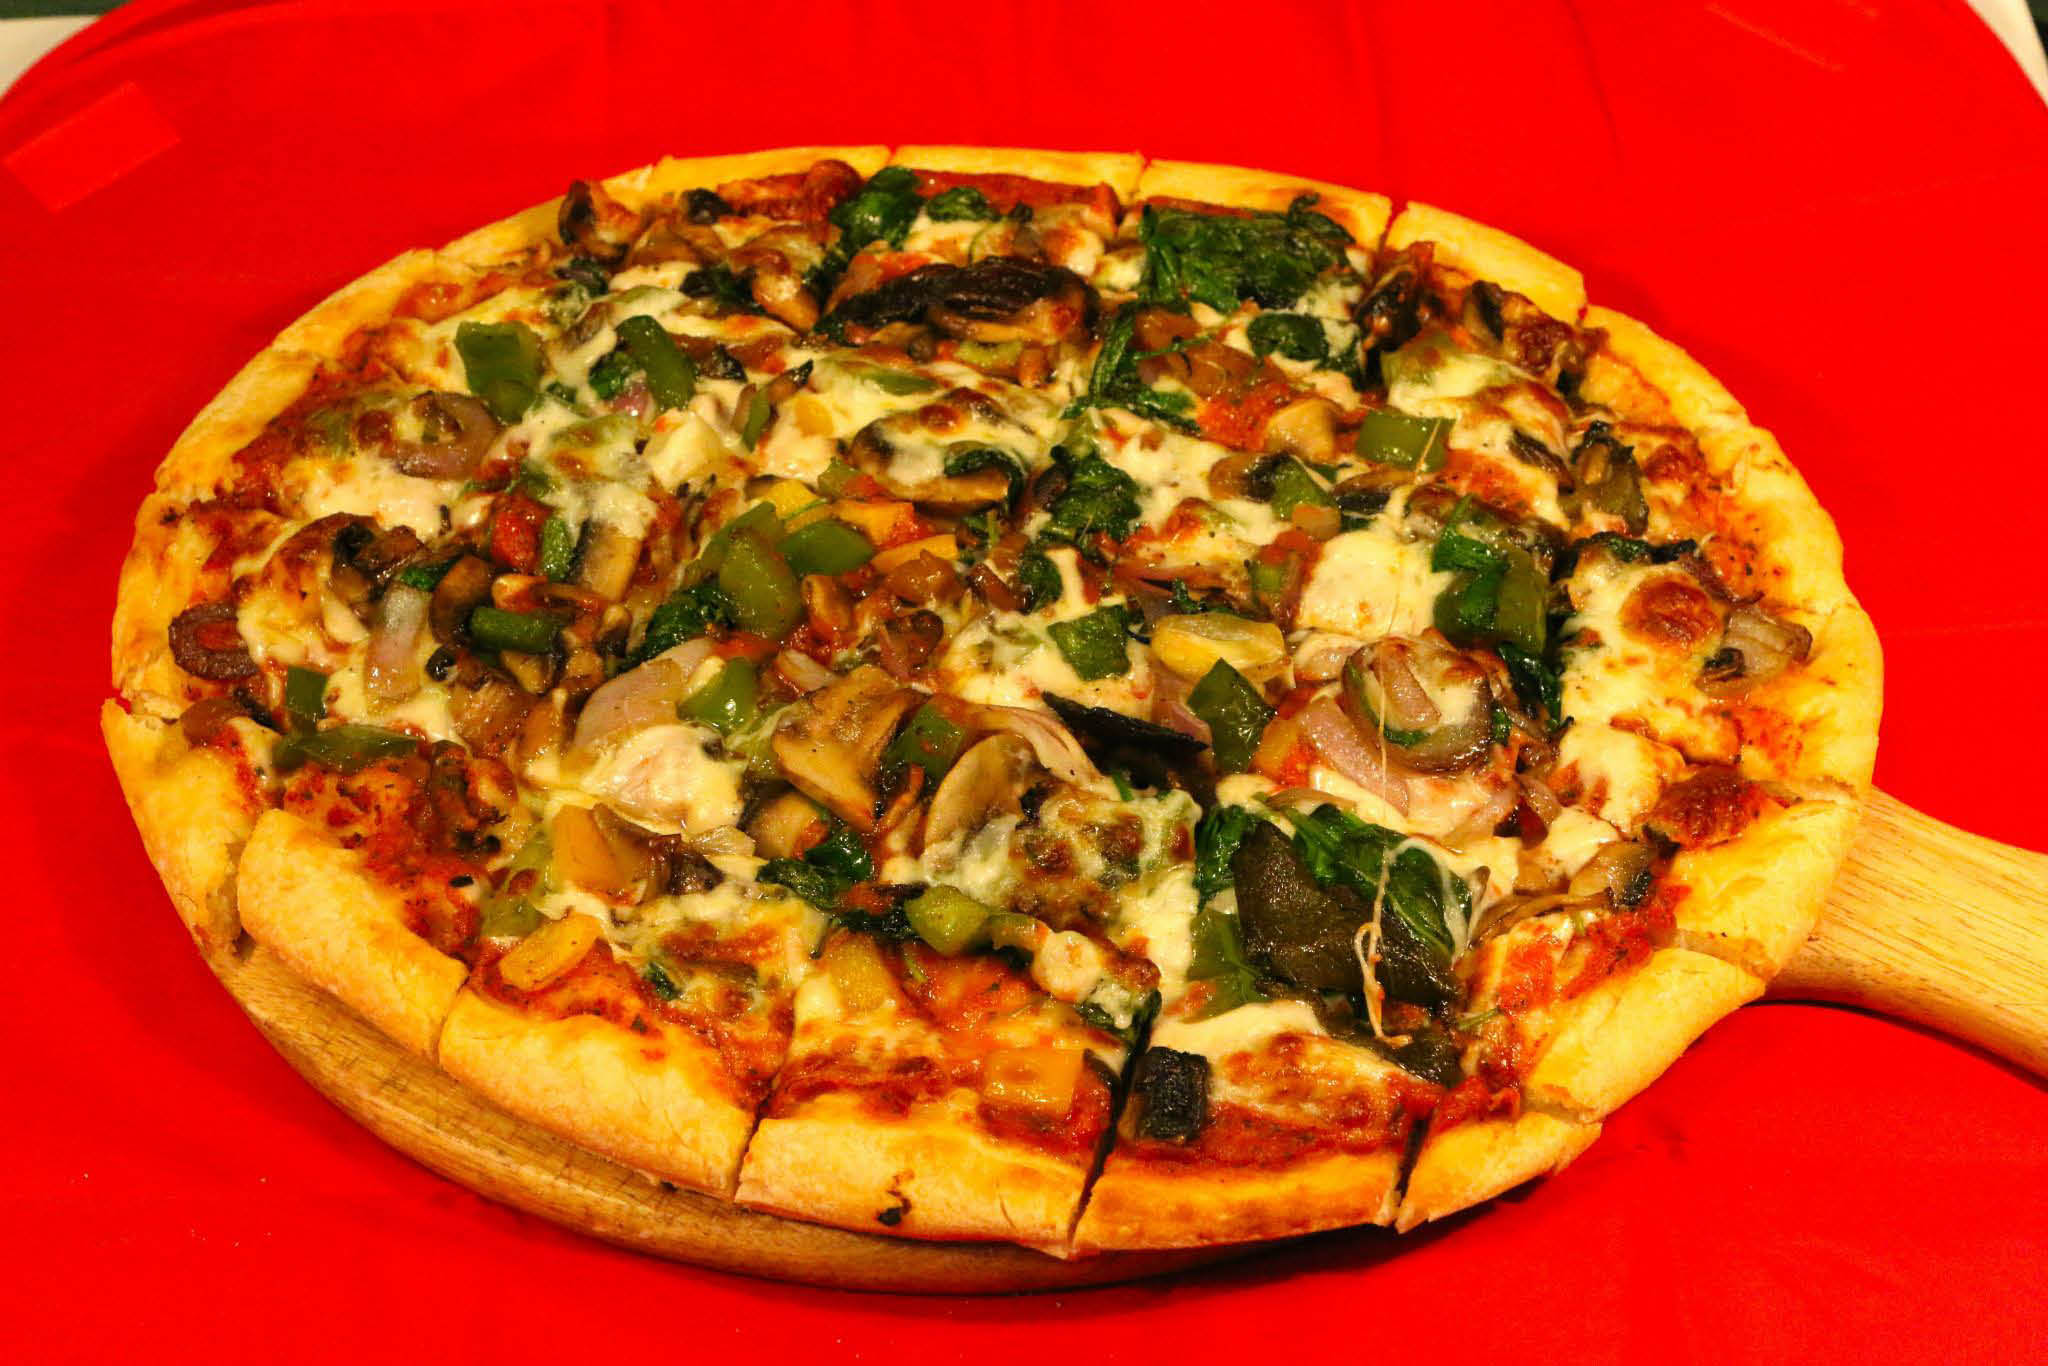 Rustic style vegetable pizza  served up hot at Tuscan Grill